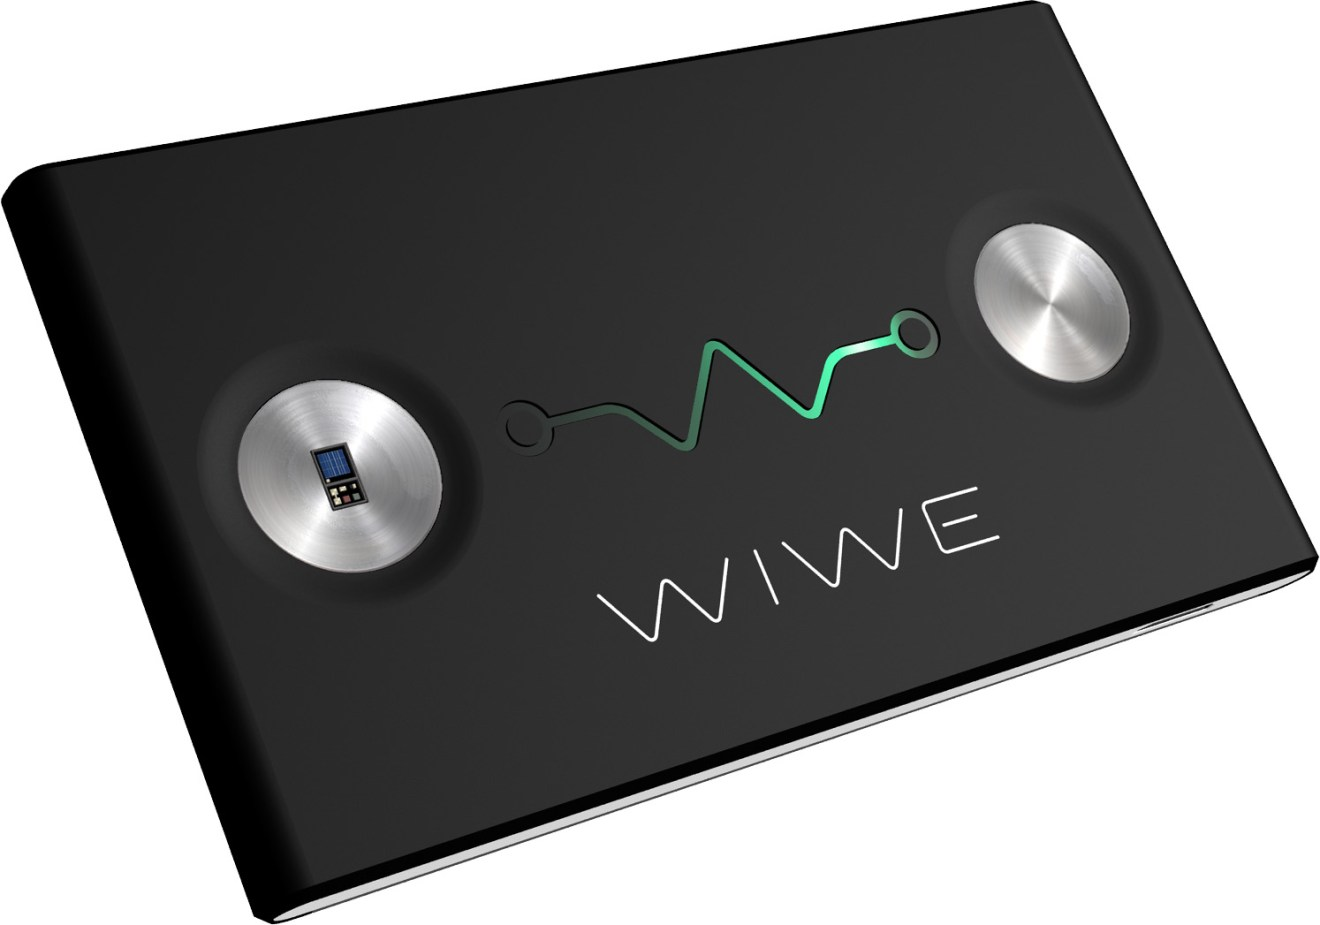 WIWE mobile ECG review: does this credit-card-sized device